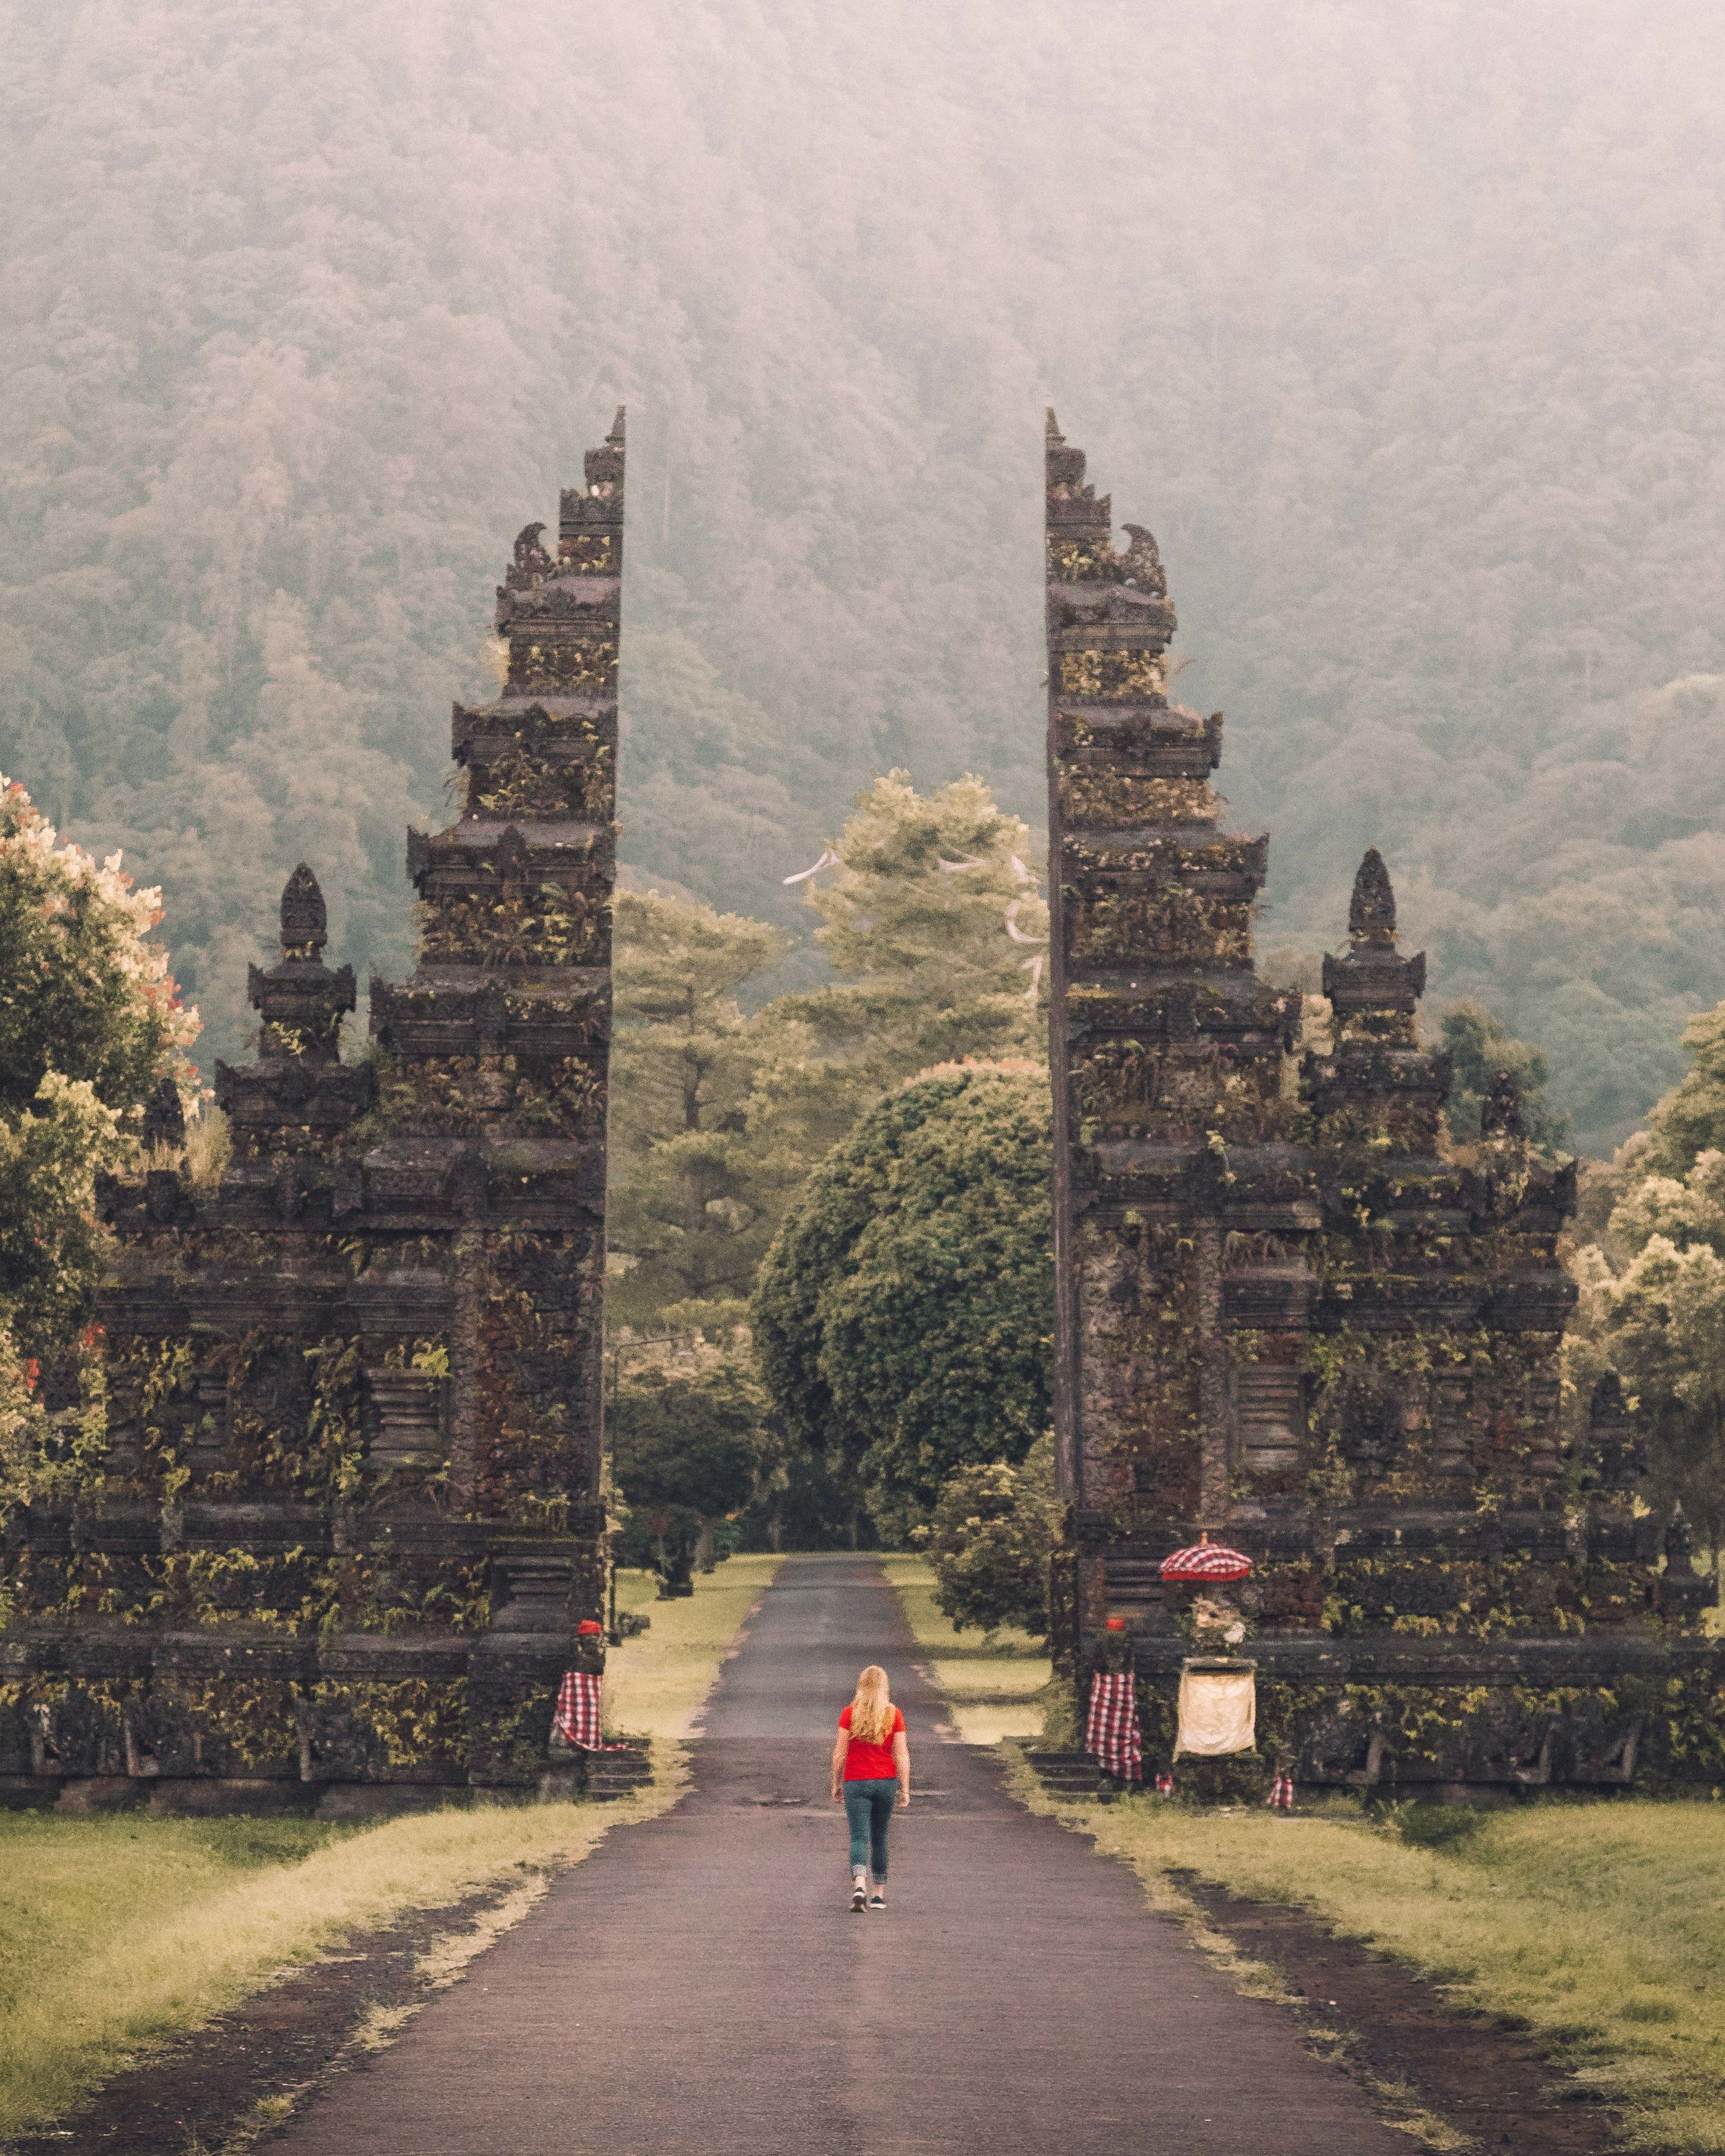 7 day Bali itinerary for instagrammers: Handara Gate